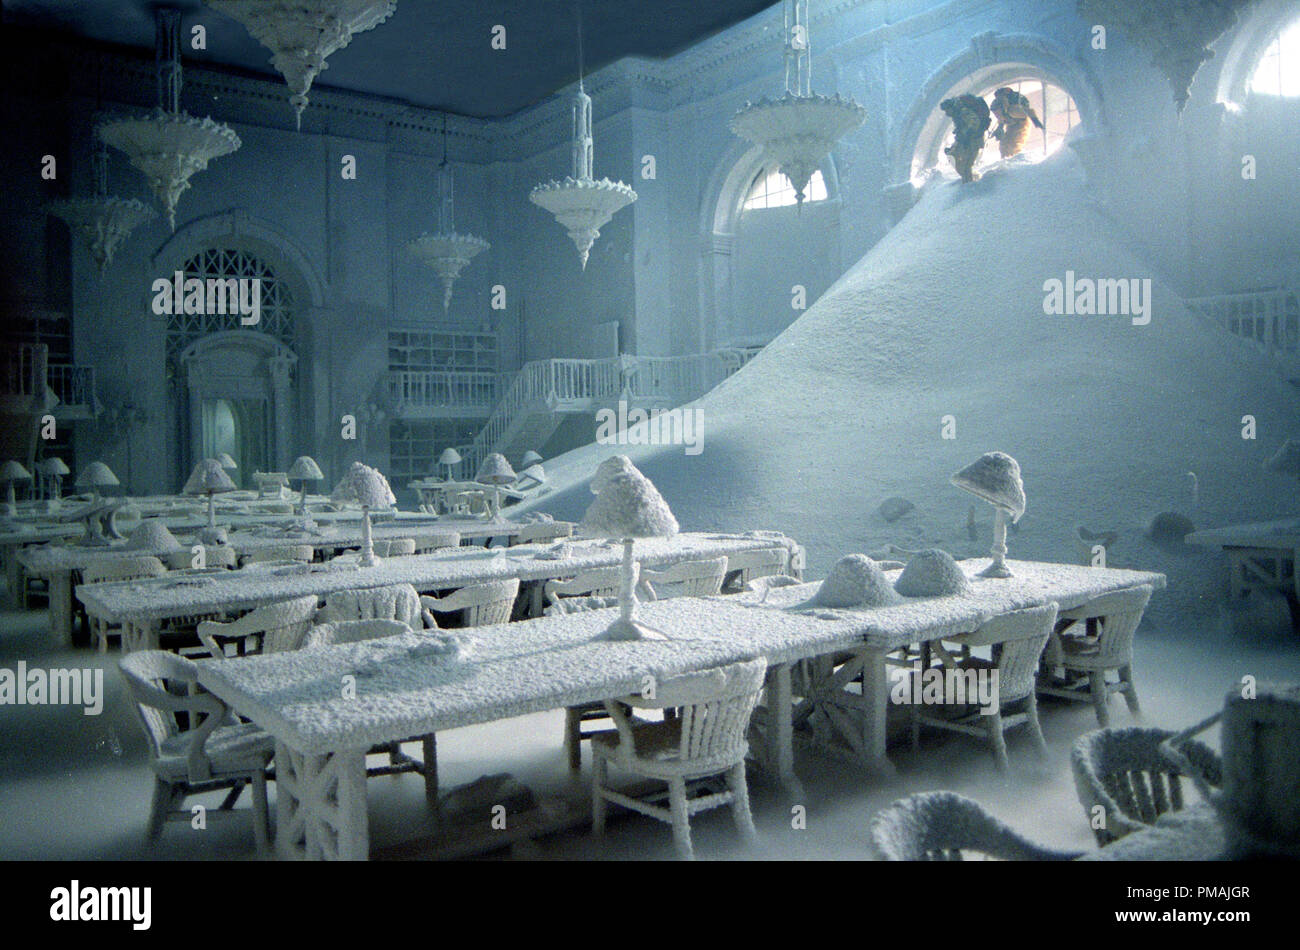 A Manhattan public library - and the rest of New York - are frozen in the wake of catastrophic climatic shift  'The Day After Tomorrow' (2004) - Stock Image